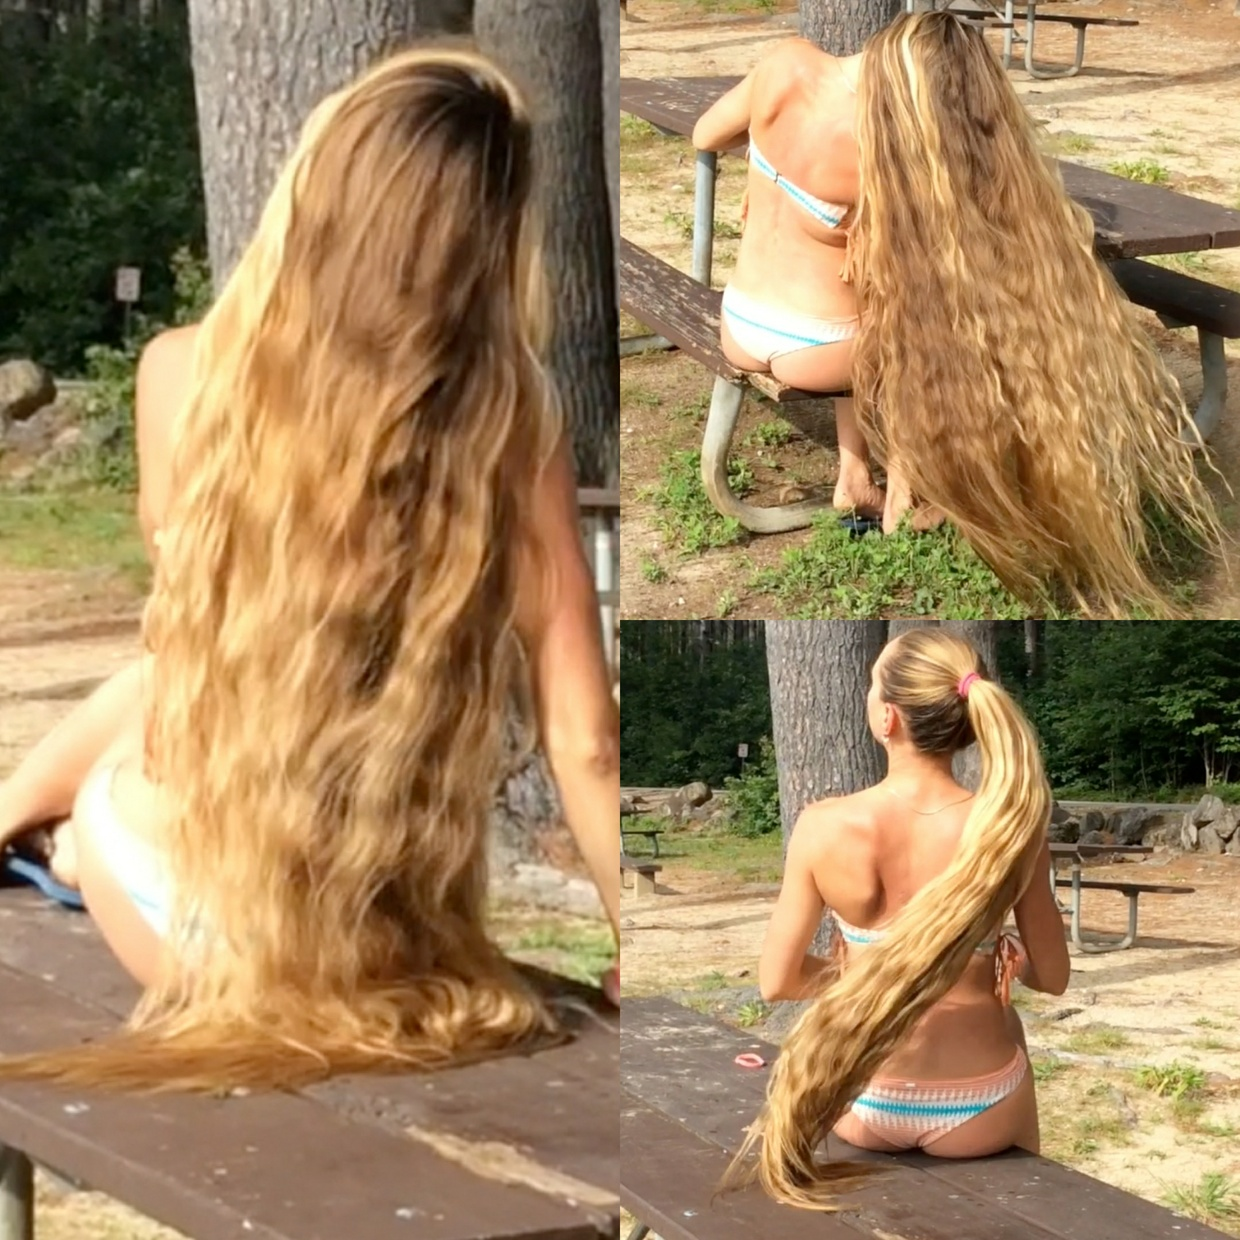 VIDEO - Rapunzel at the bench